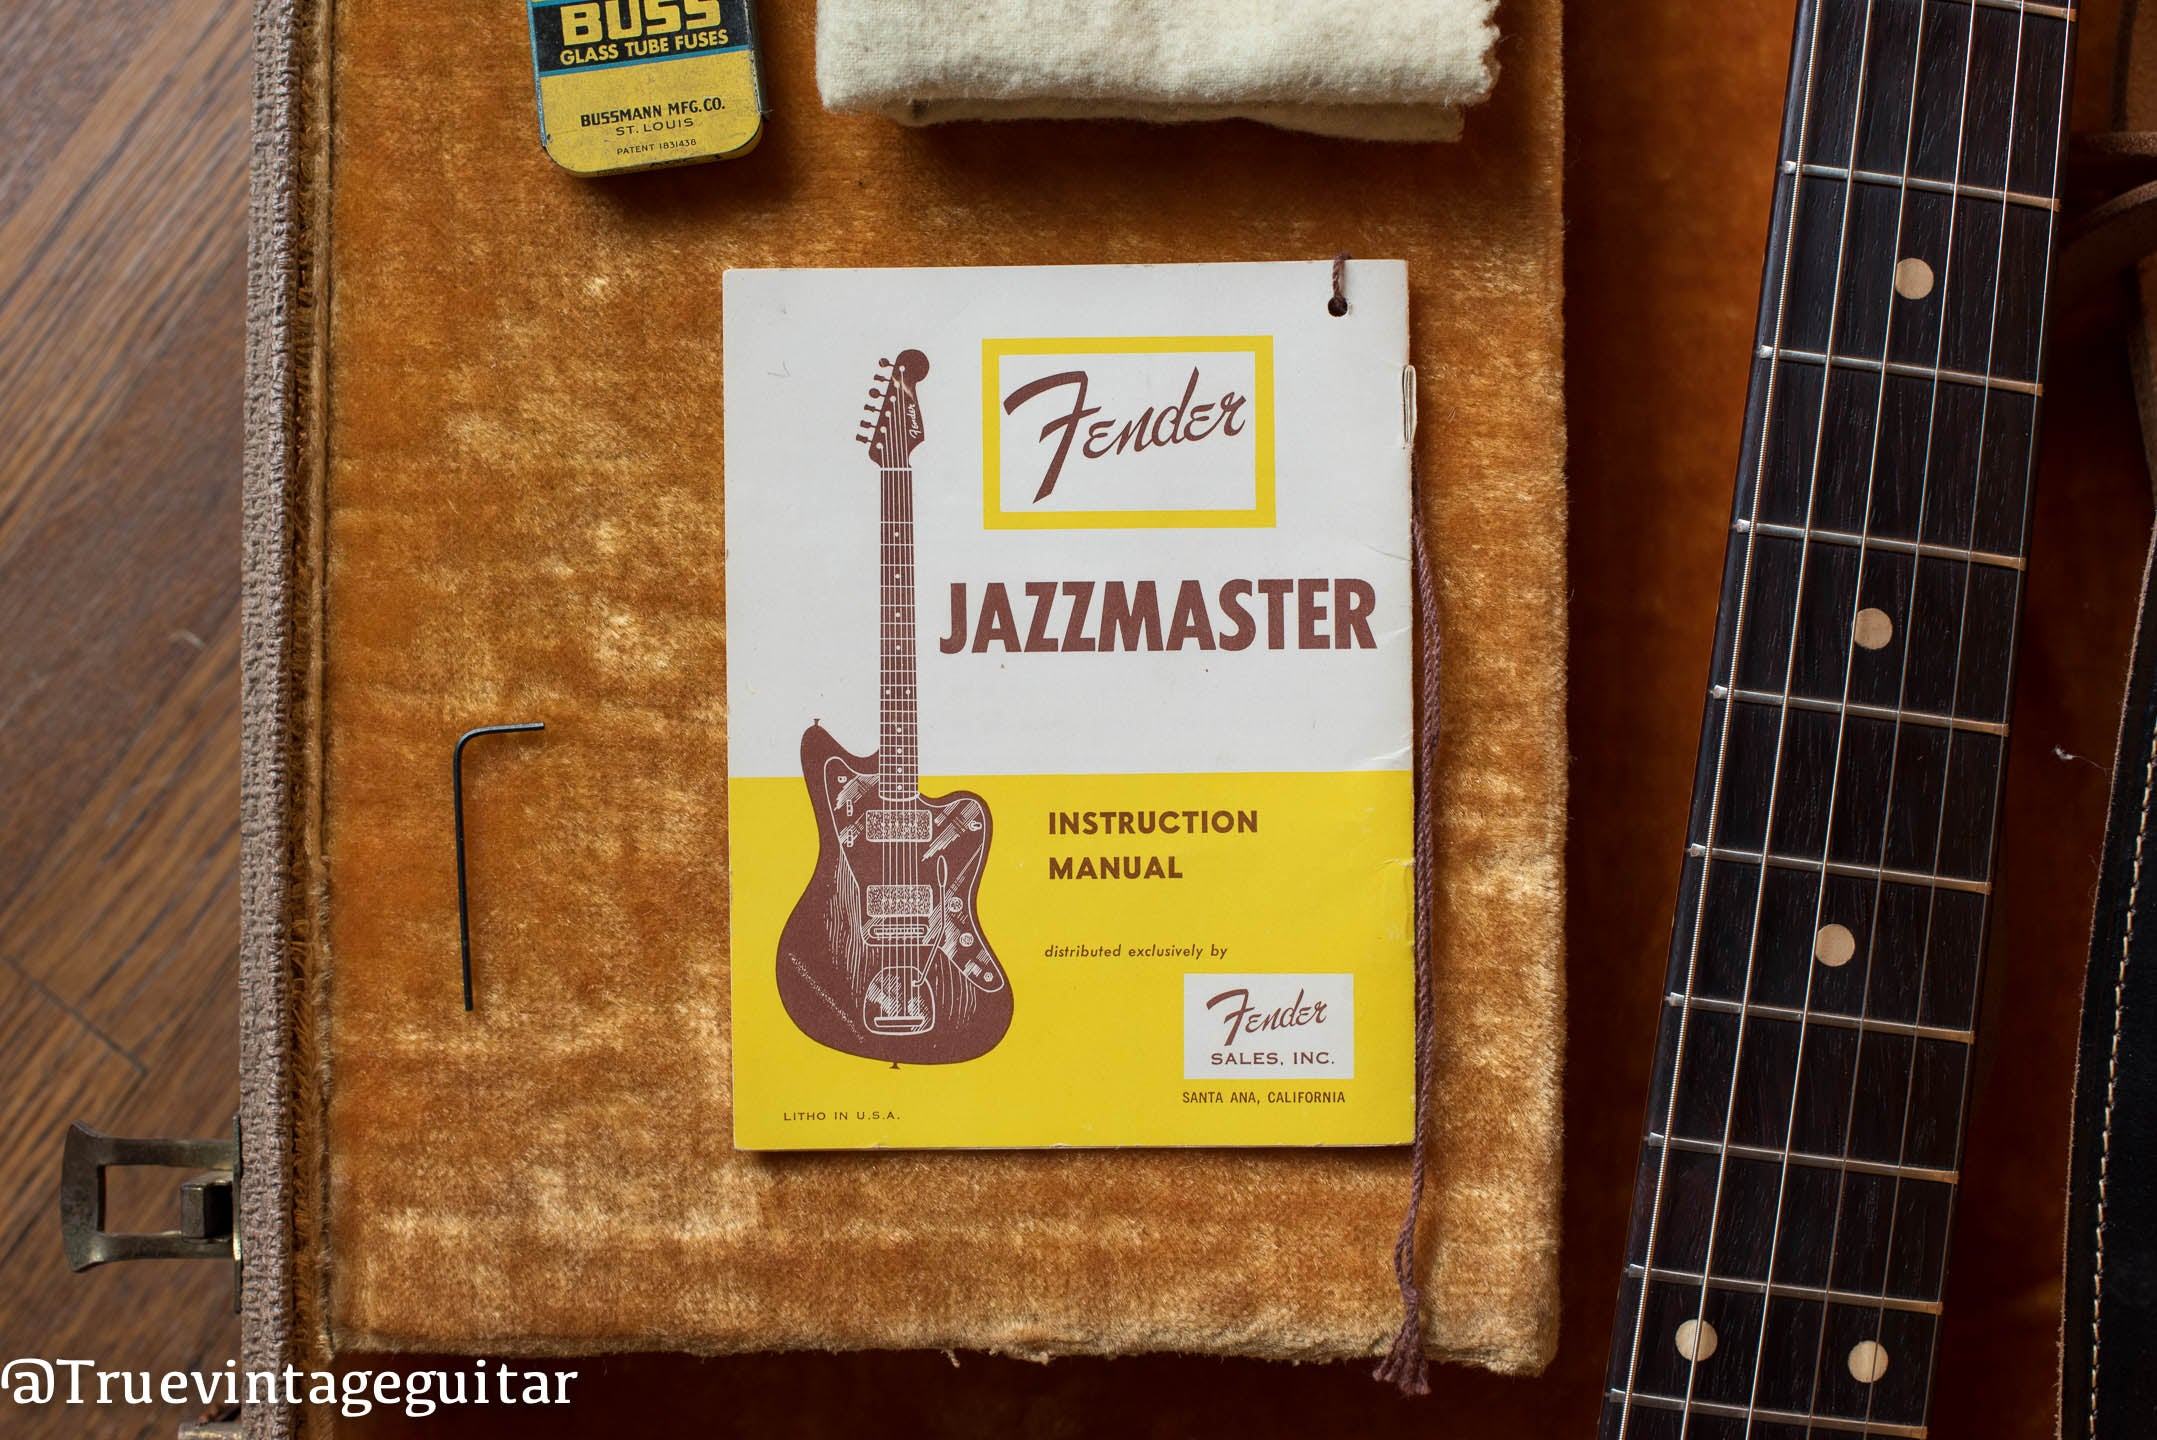 1961 Fender Jazzmaster Guitar hang tag